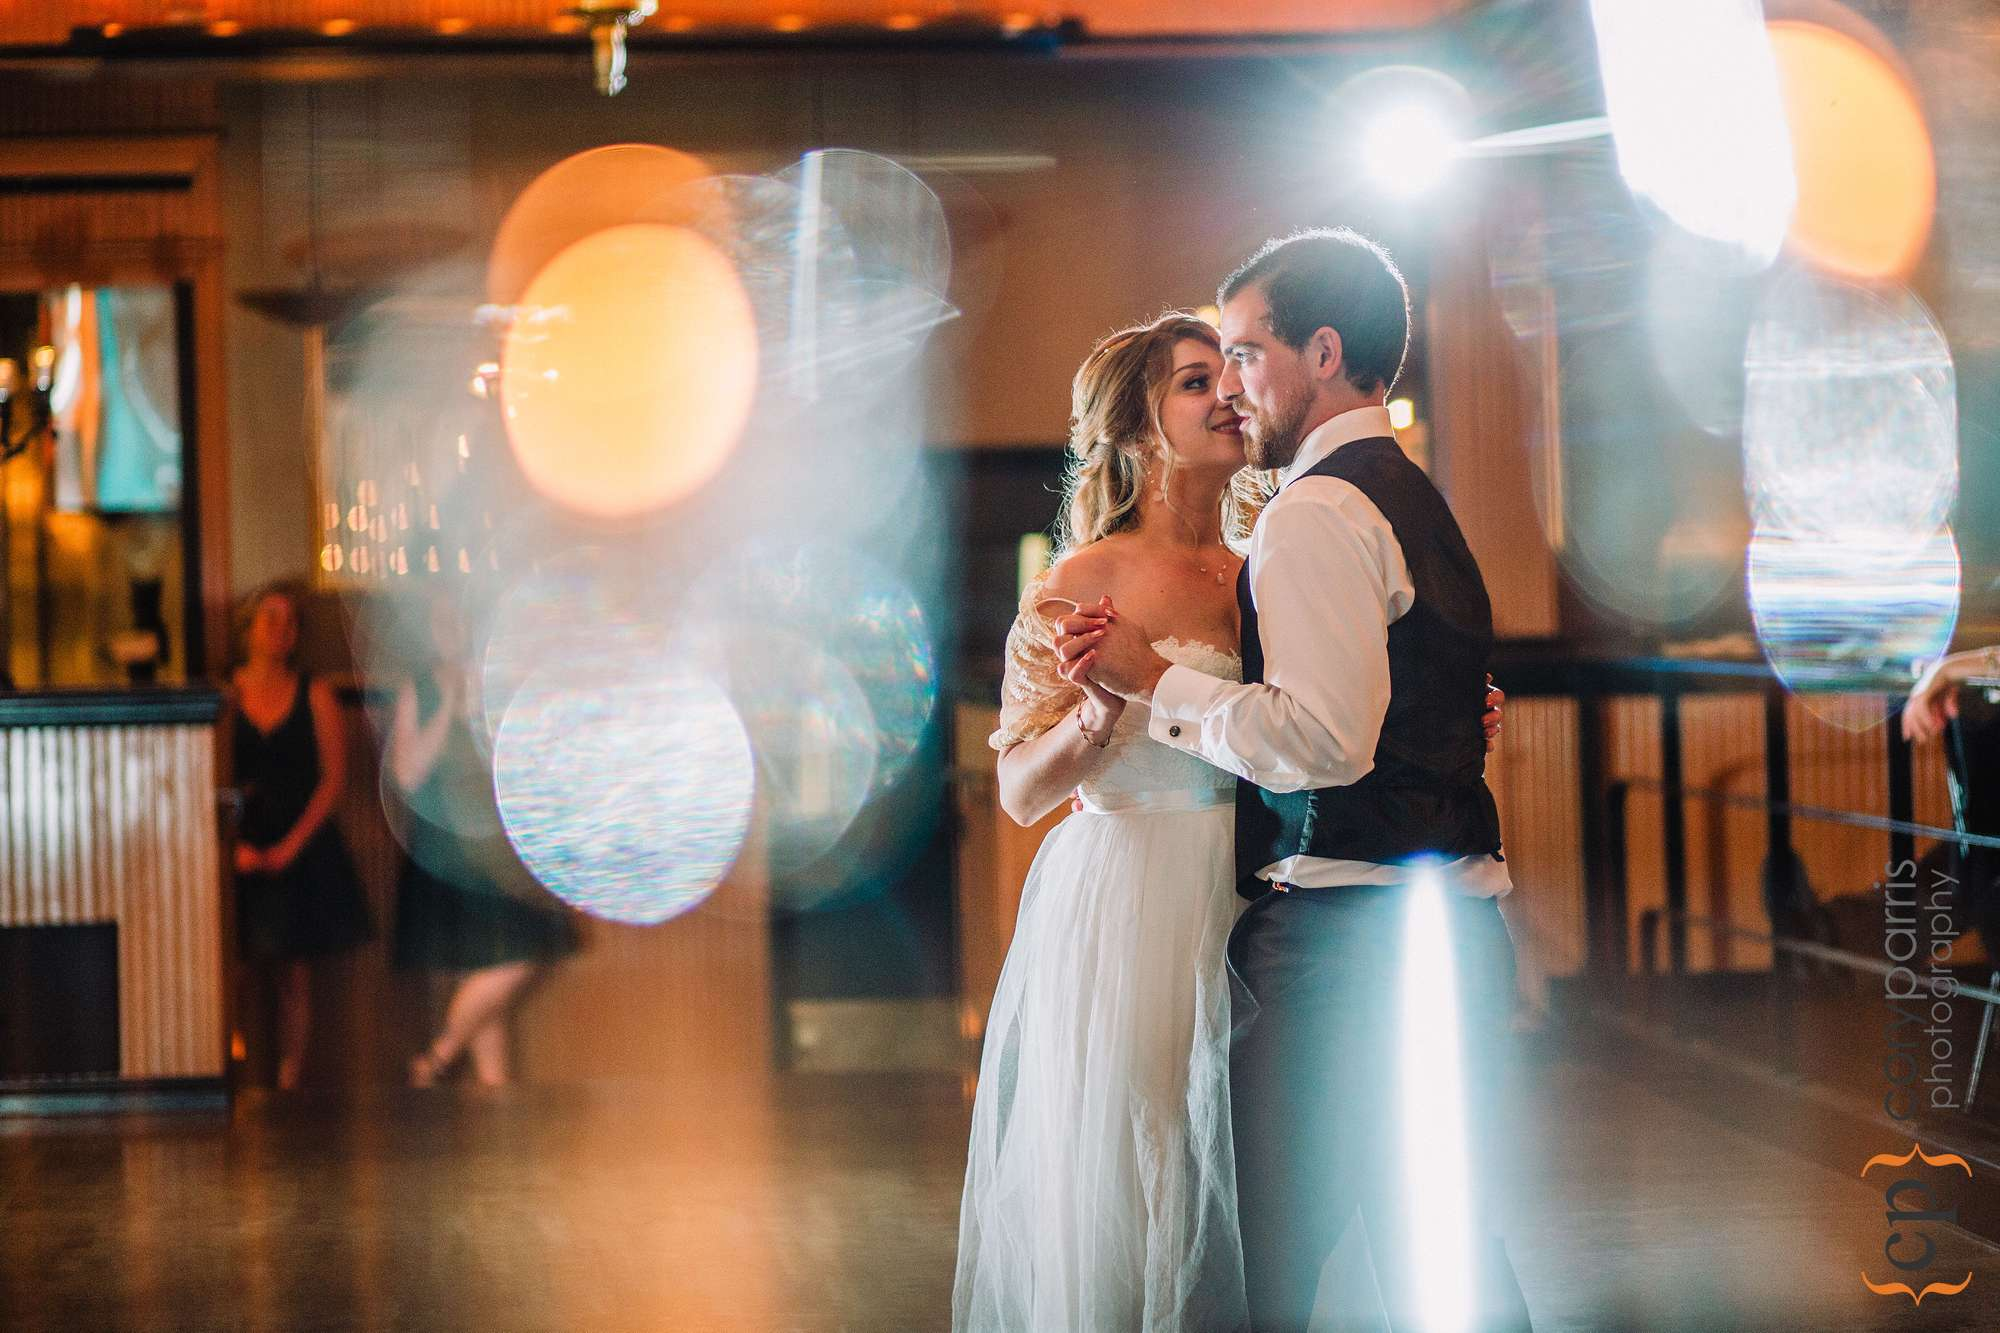 Catie & Jared's first dance at the Lake Union Cafe.